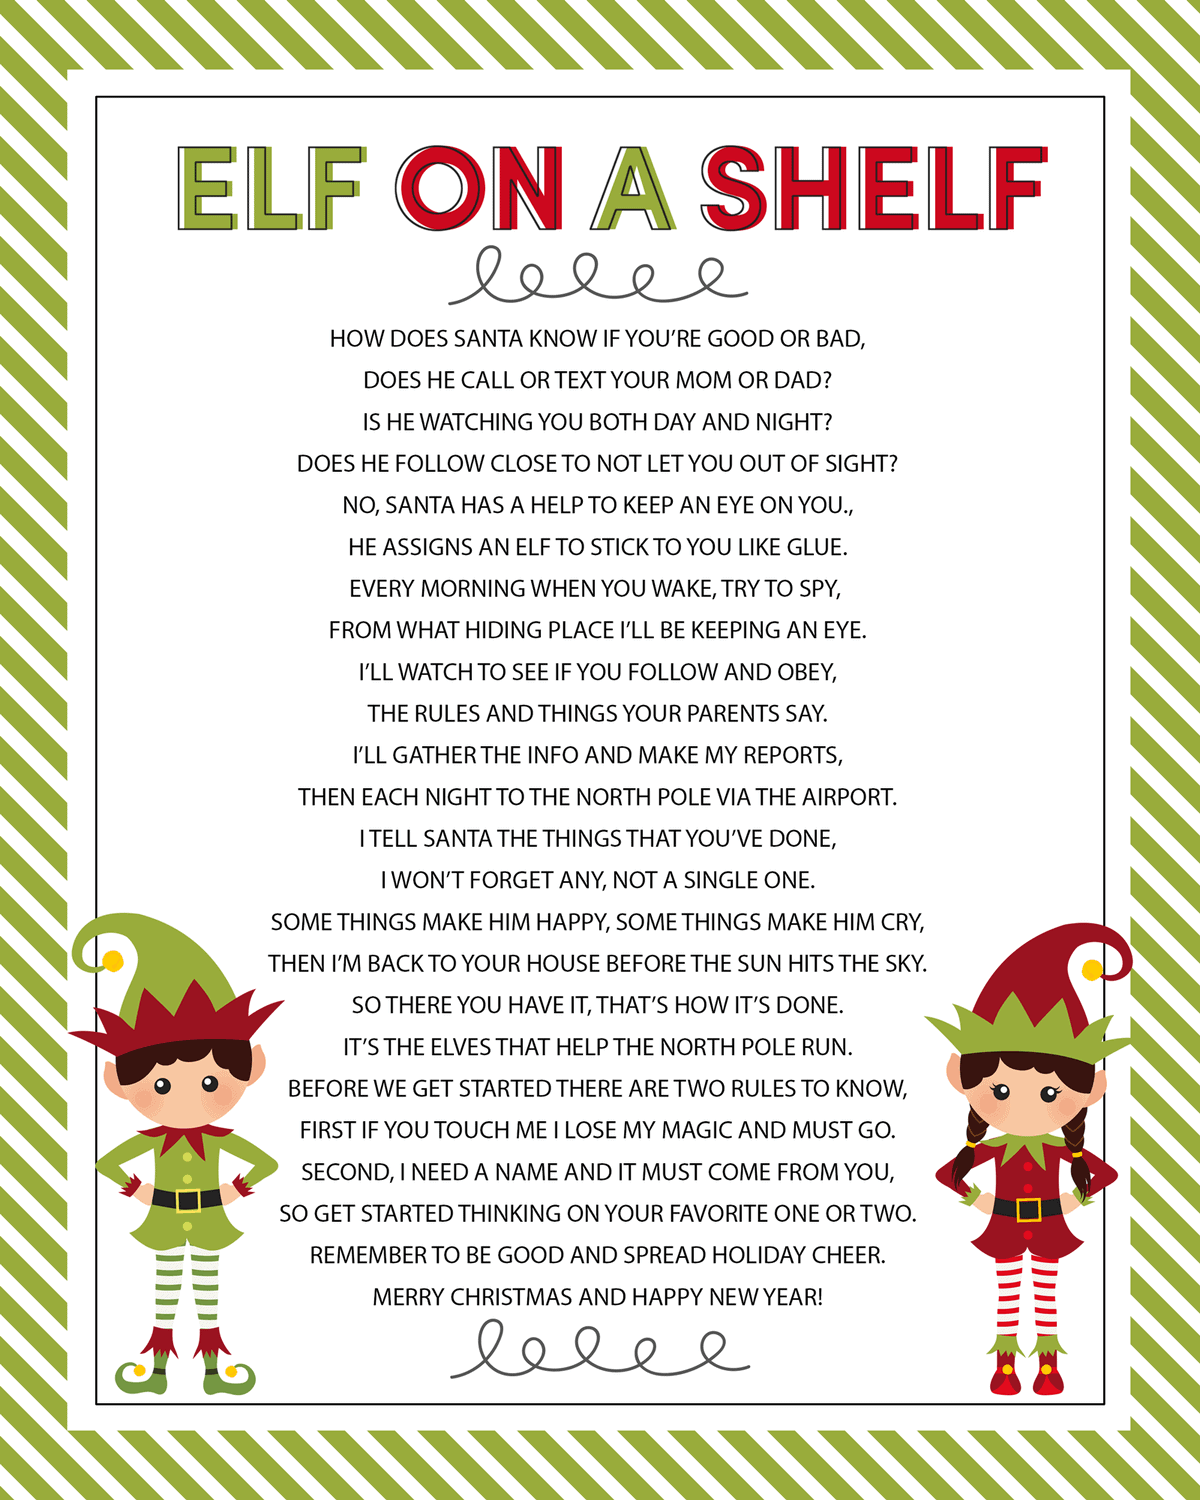 picture about Elf on the Shelf Letter Printable referred to as Elf upon the Shelf Tale - Cost-free Printable Poem - Lil Luna